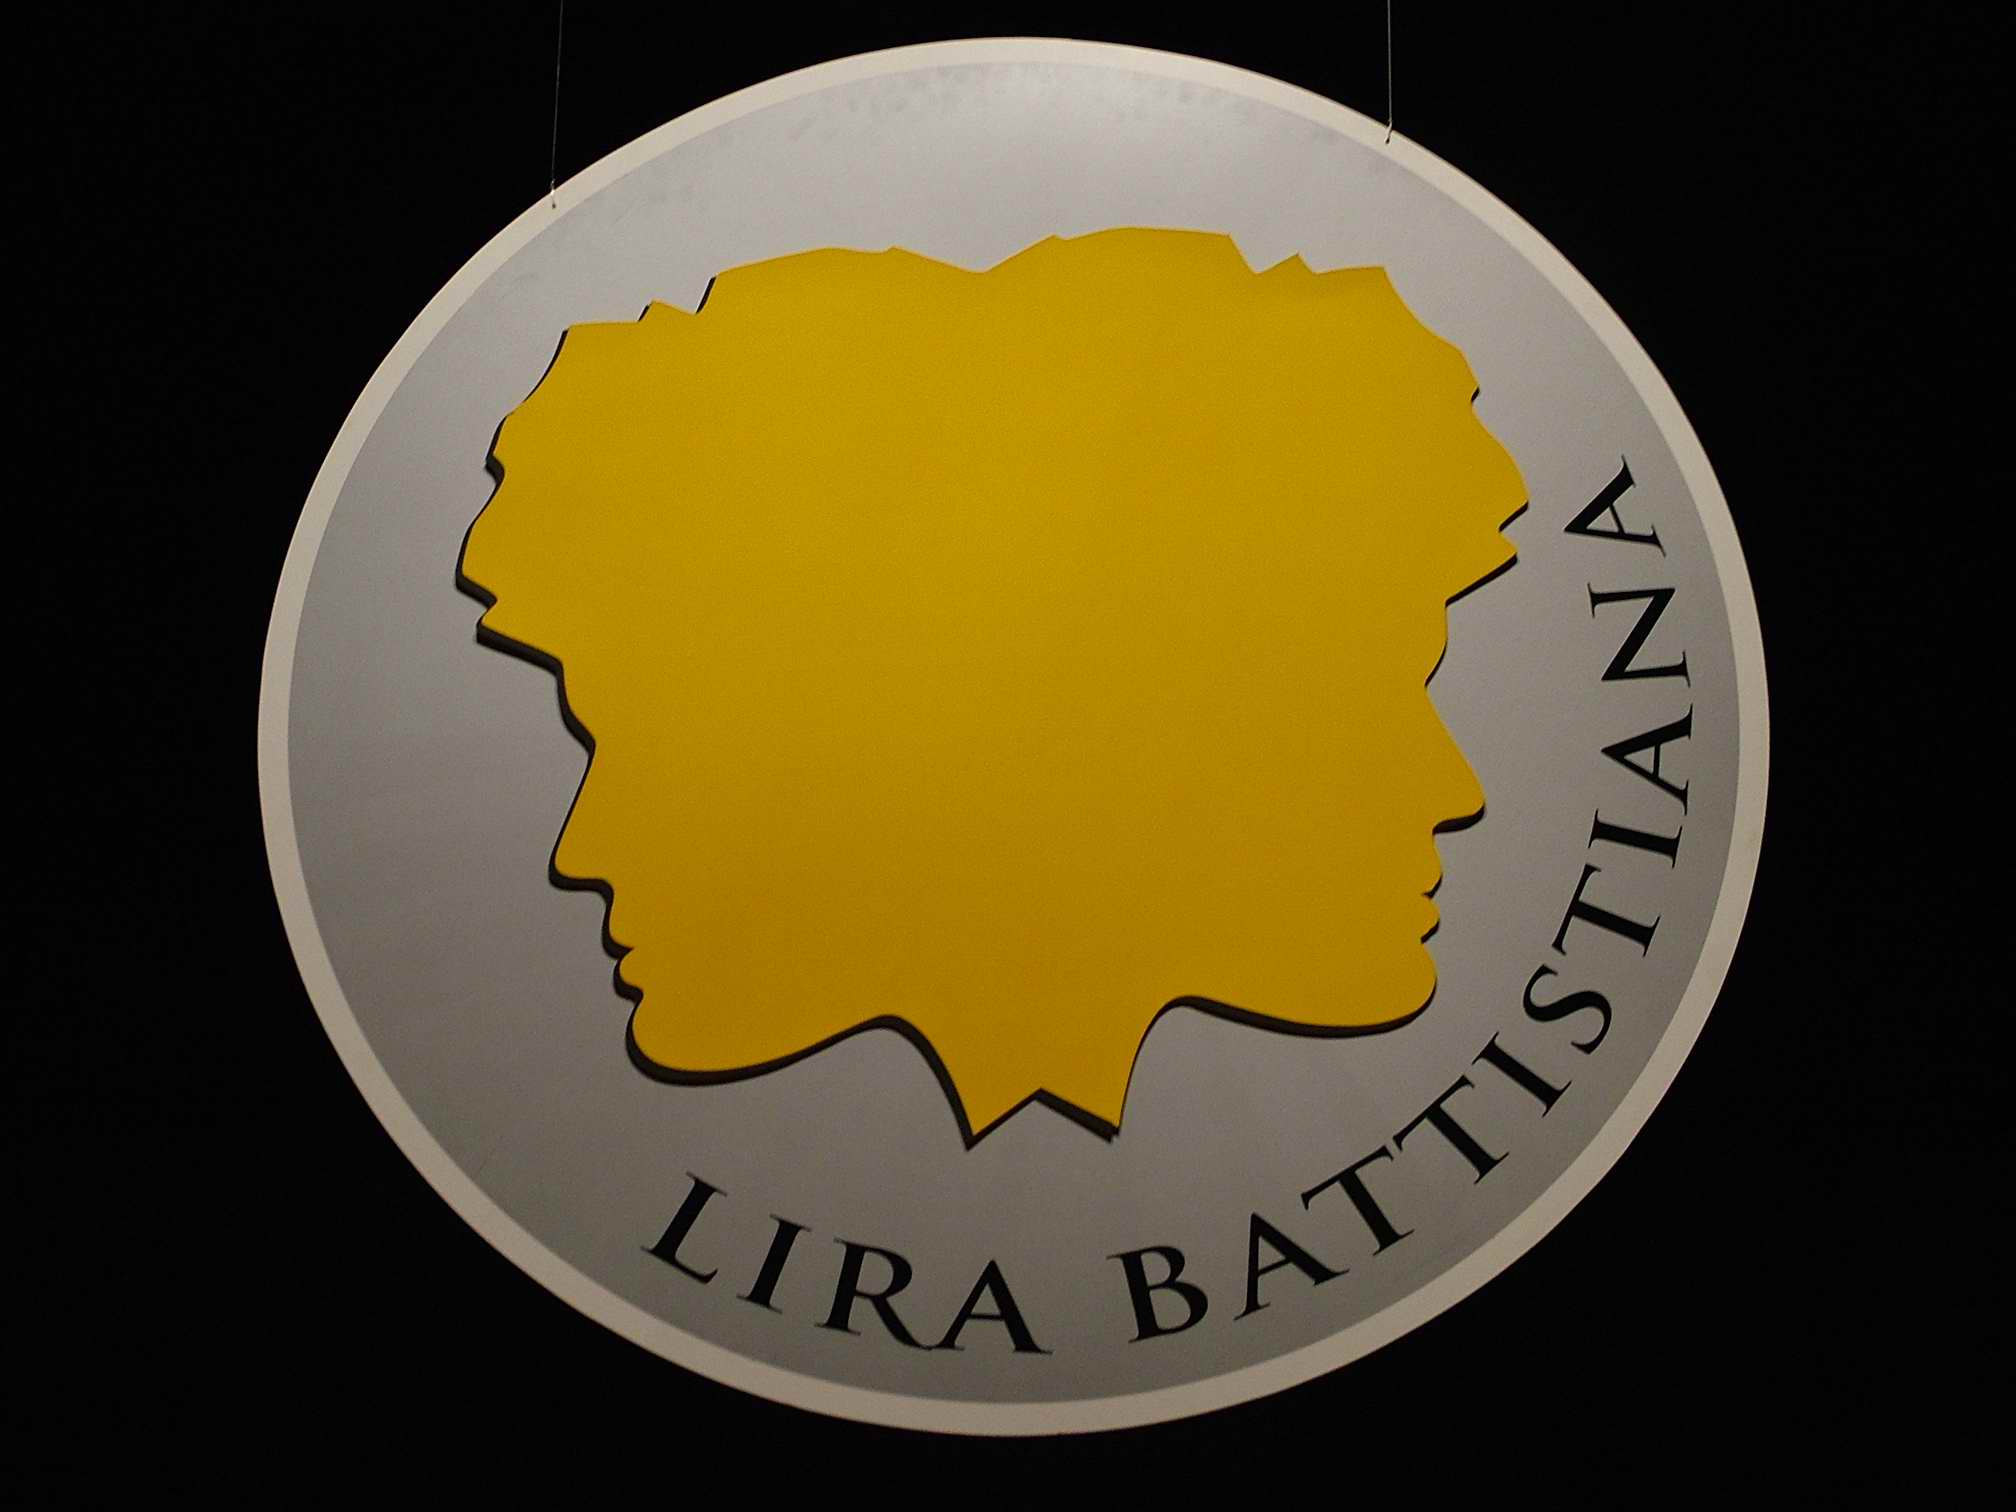 Lira Battistiana